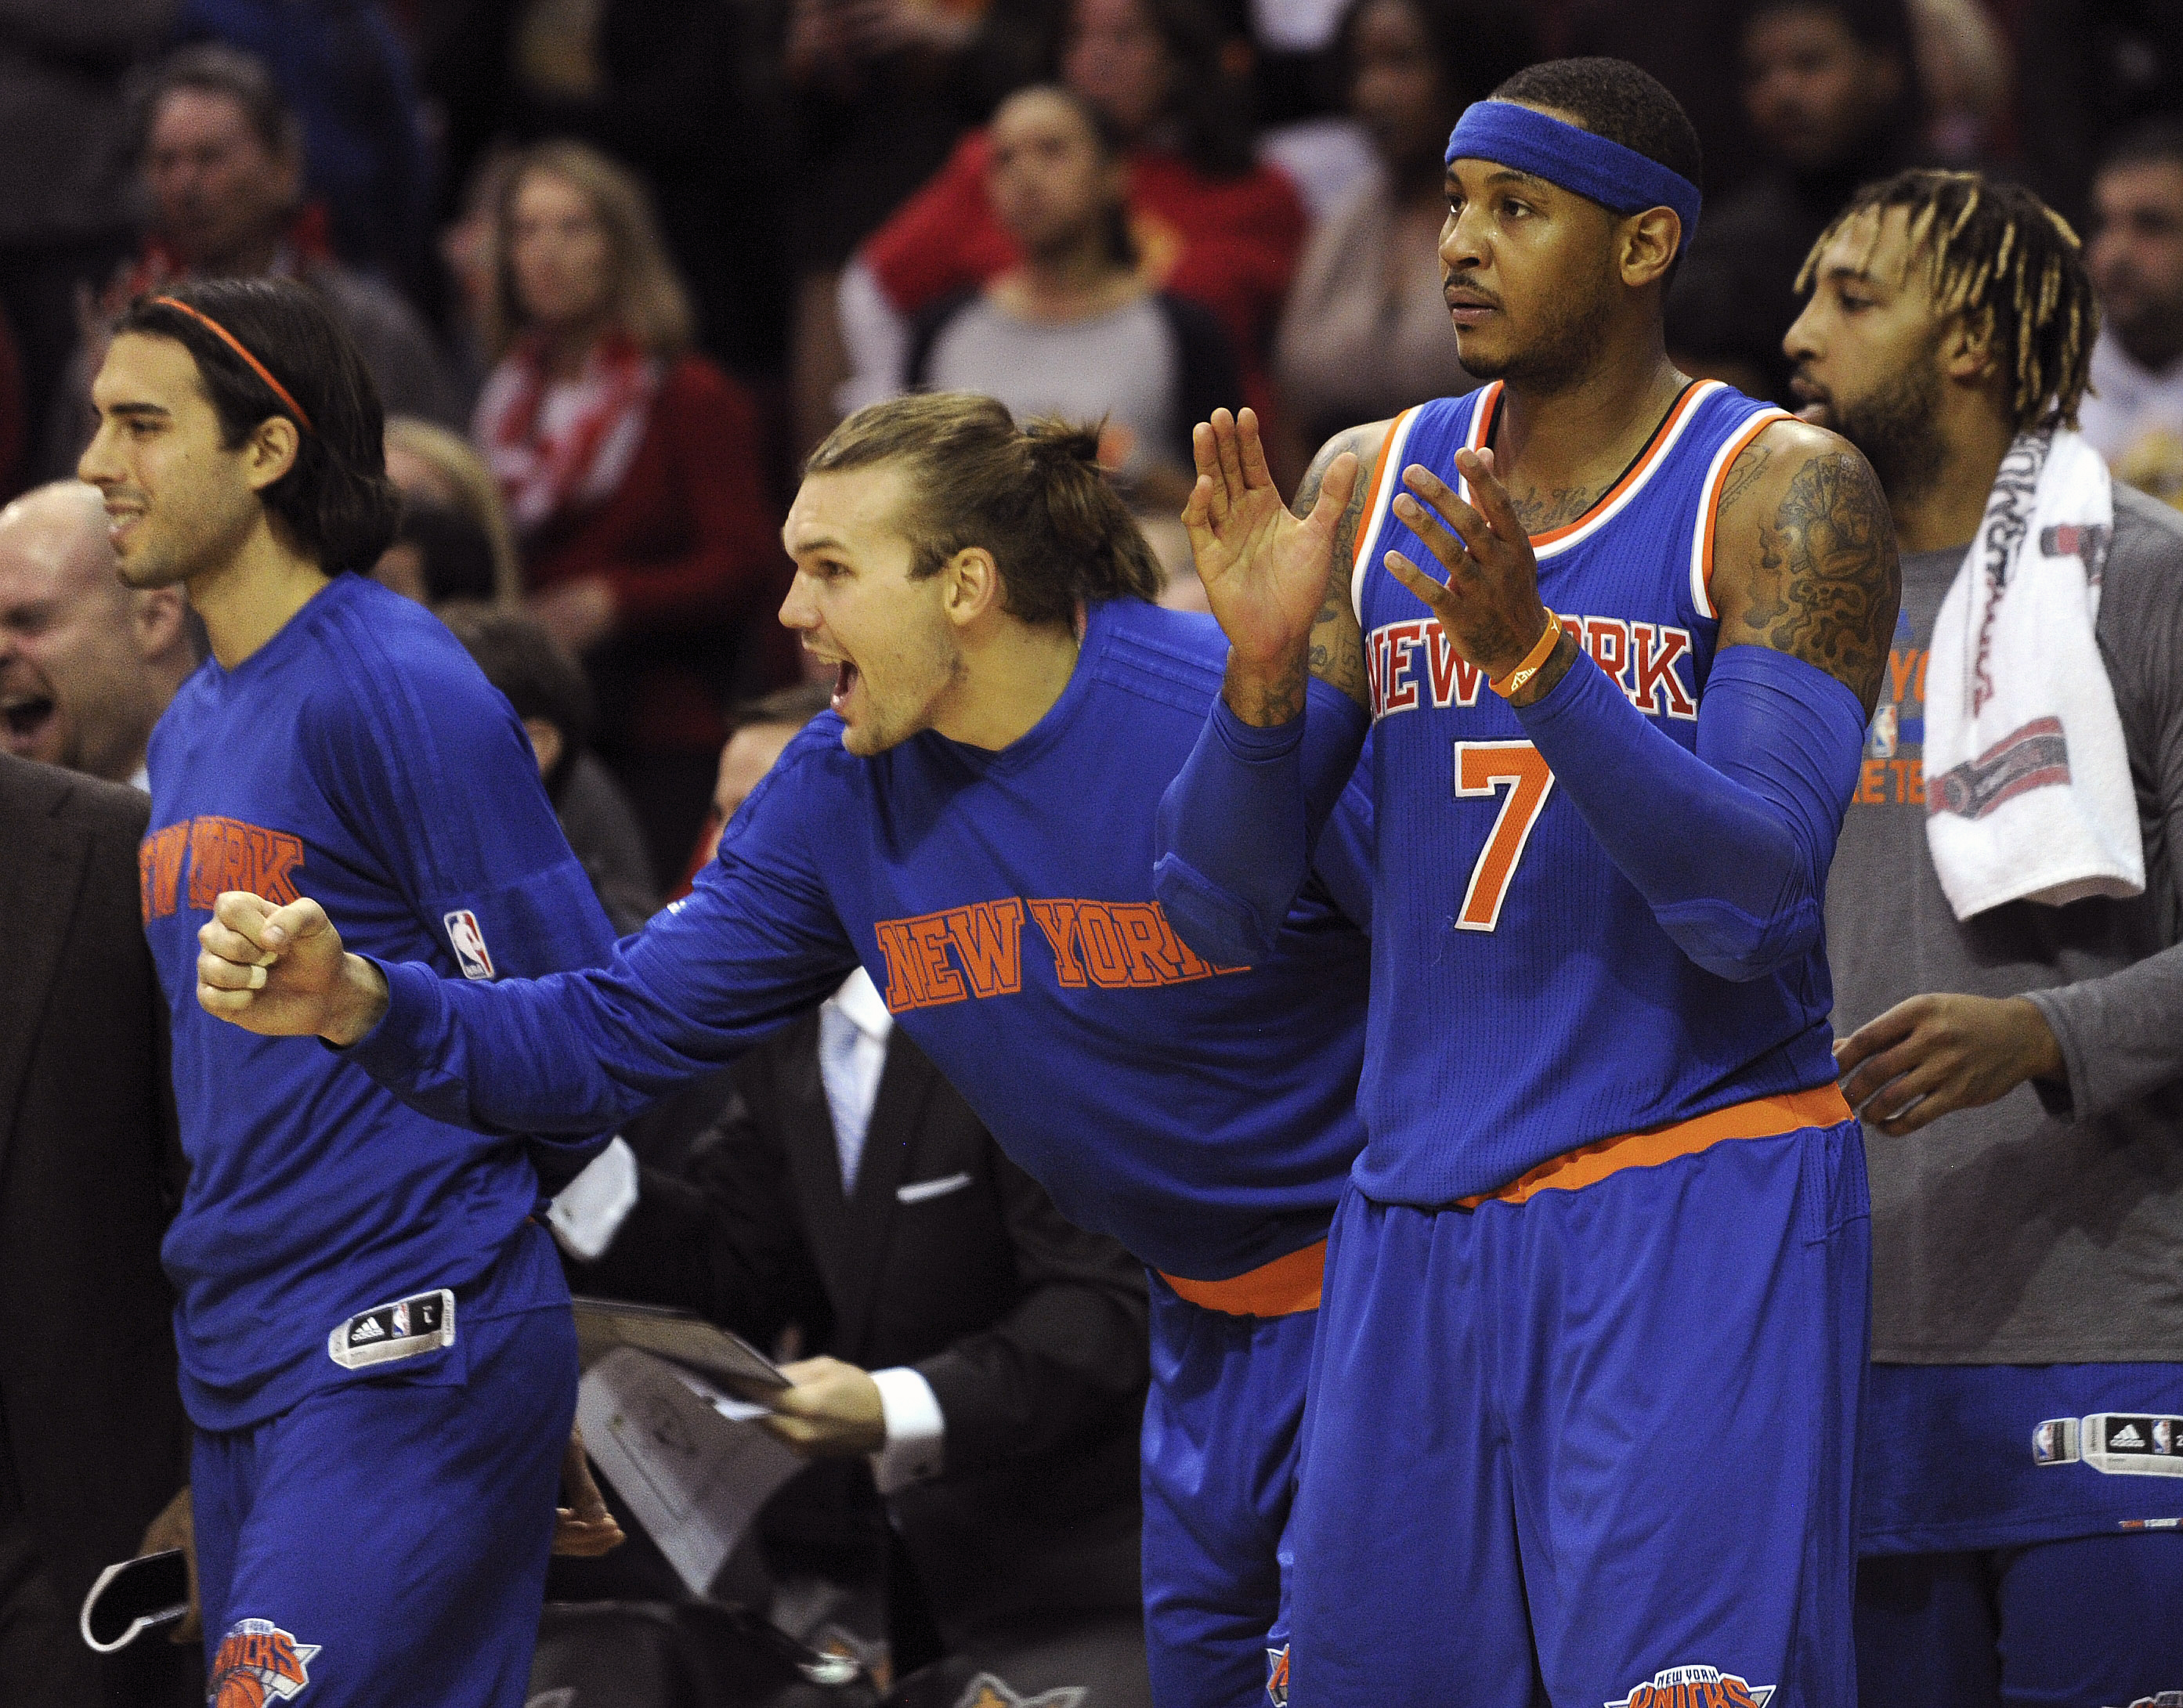 New York Knicks forward Carmelo Anthony (7) claps after Houston Rockets guard James Harden was called for an offensive foul in the second half of an NBA basketball game, Saturday, Nov. 21, 2015, in Houston. (AP Photo/Eric Christian Smith)